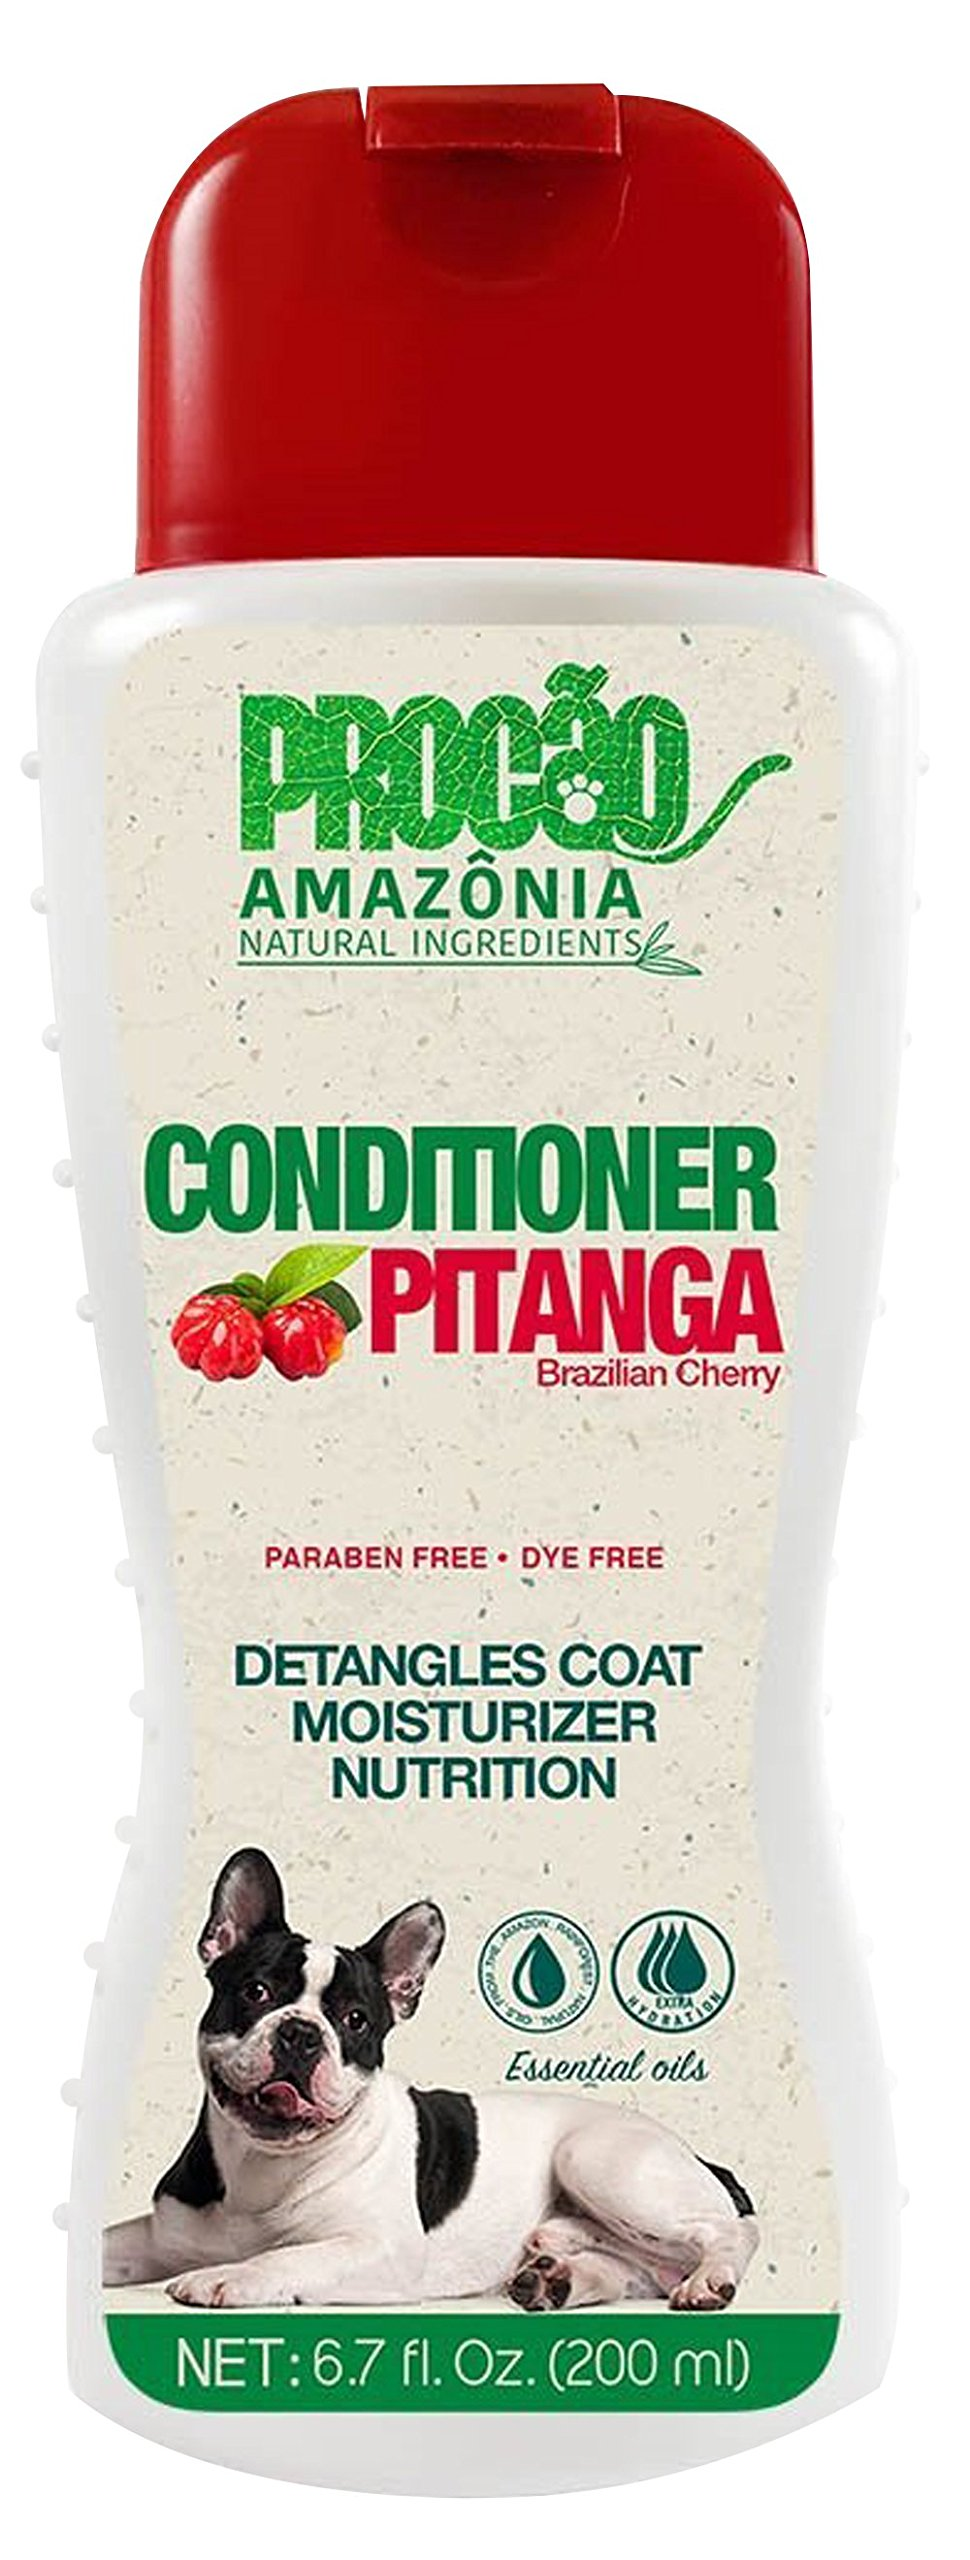 PROCÃO Pet Conditioner Pitanga Conditioner (6.7 oz) - Natural Stimulants and Well Water - Detangles Coat - All Natural - Antioxidants- Sustainably Sourced from Amazon Rainforest- No Parabens/Dyes